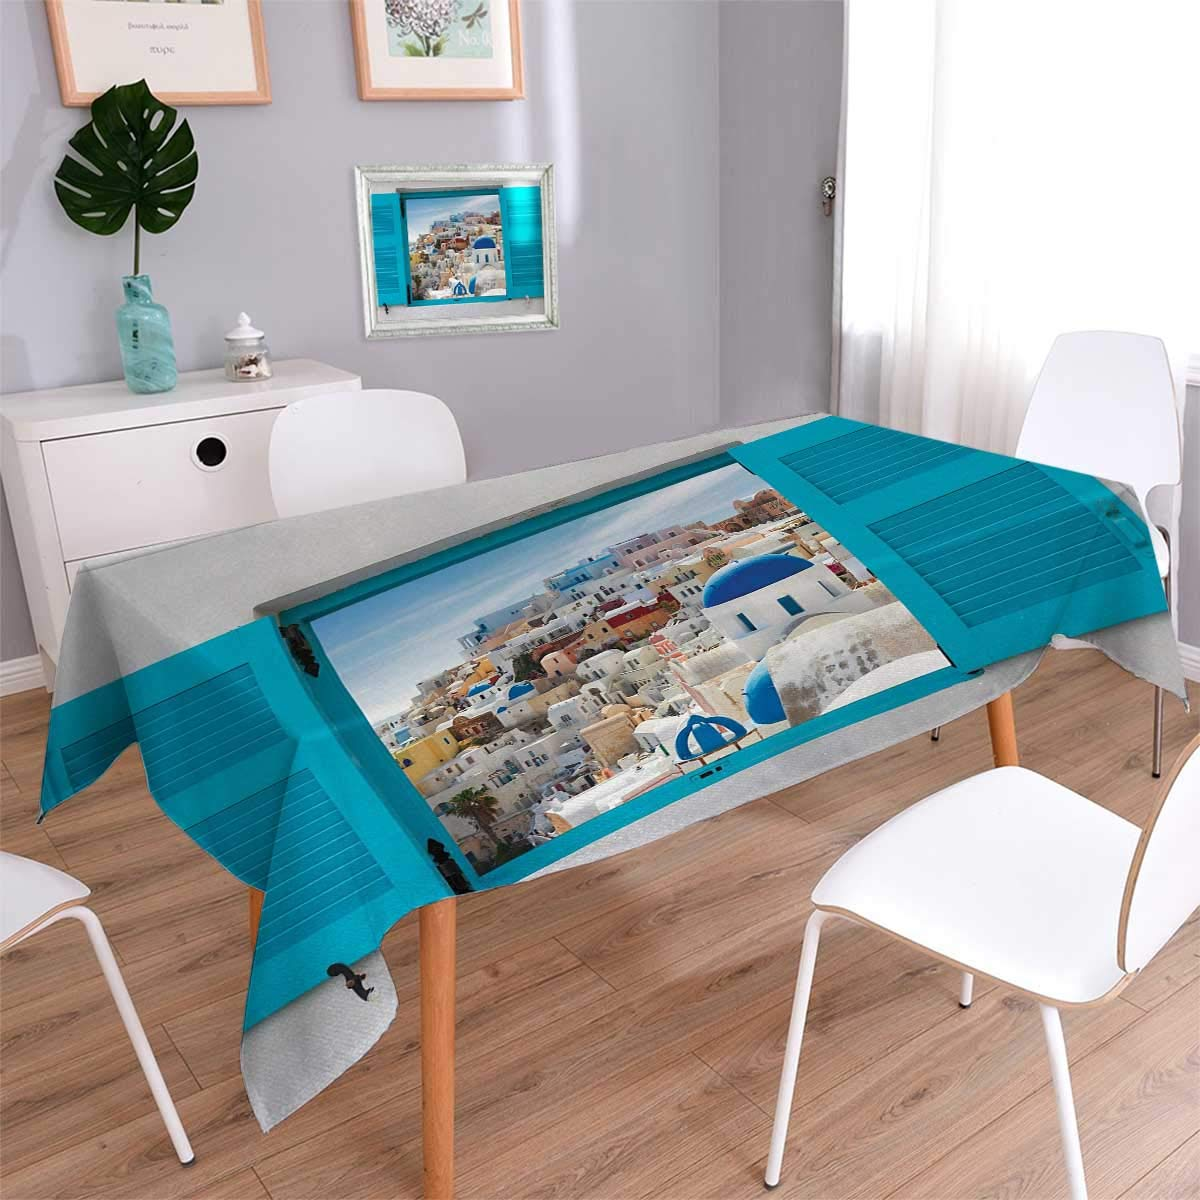 Anmaseven European Oblong Dinning Tabletop Decor Old Shutters of Window with View of Traditional Greek Village Heritage Culture Table Cover for Kitchen Multicolor Size: W60 x L102